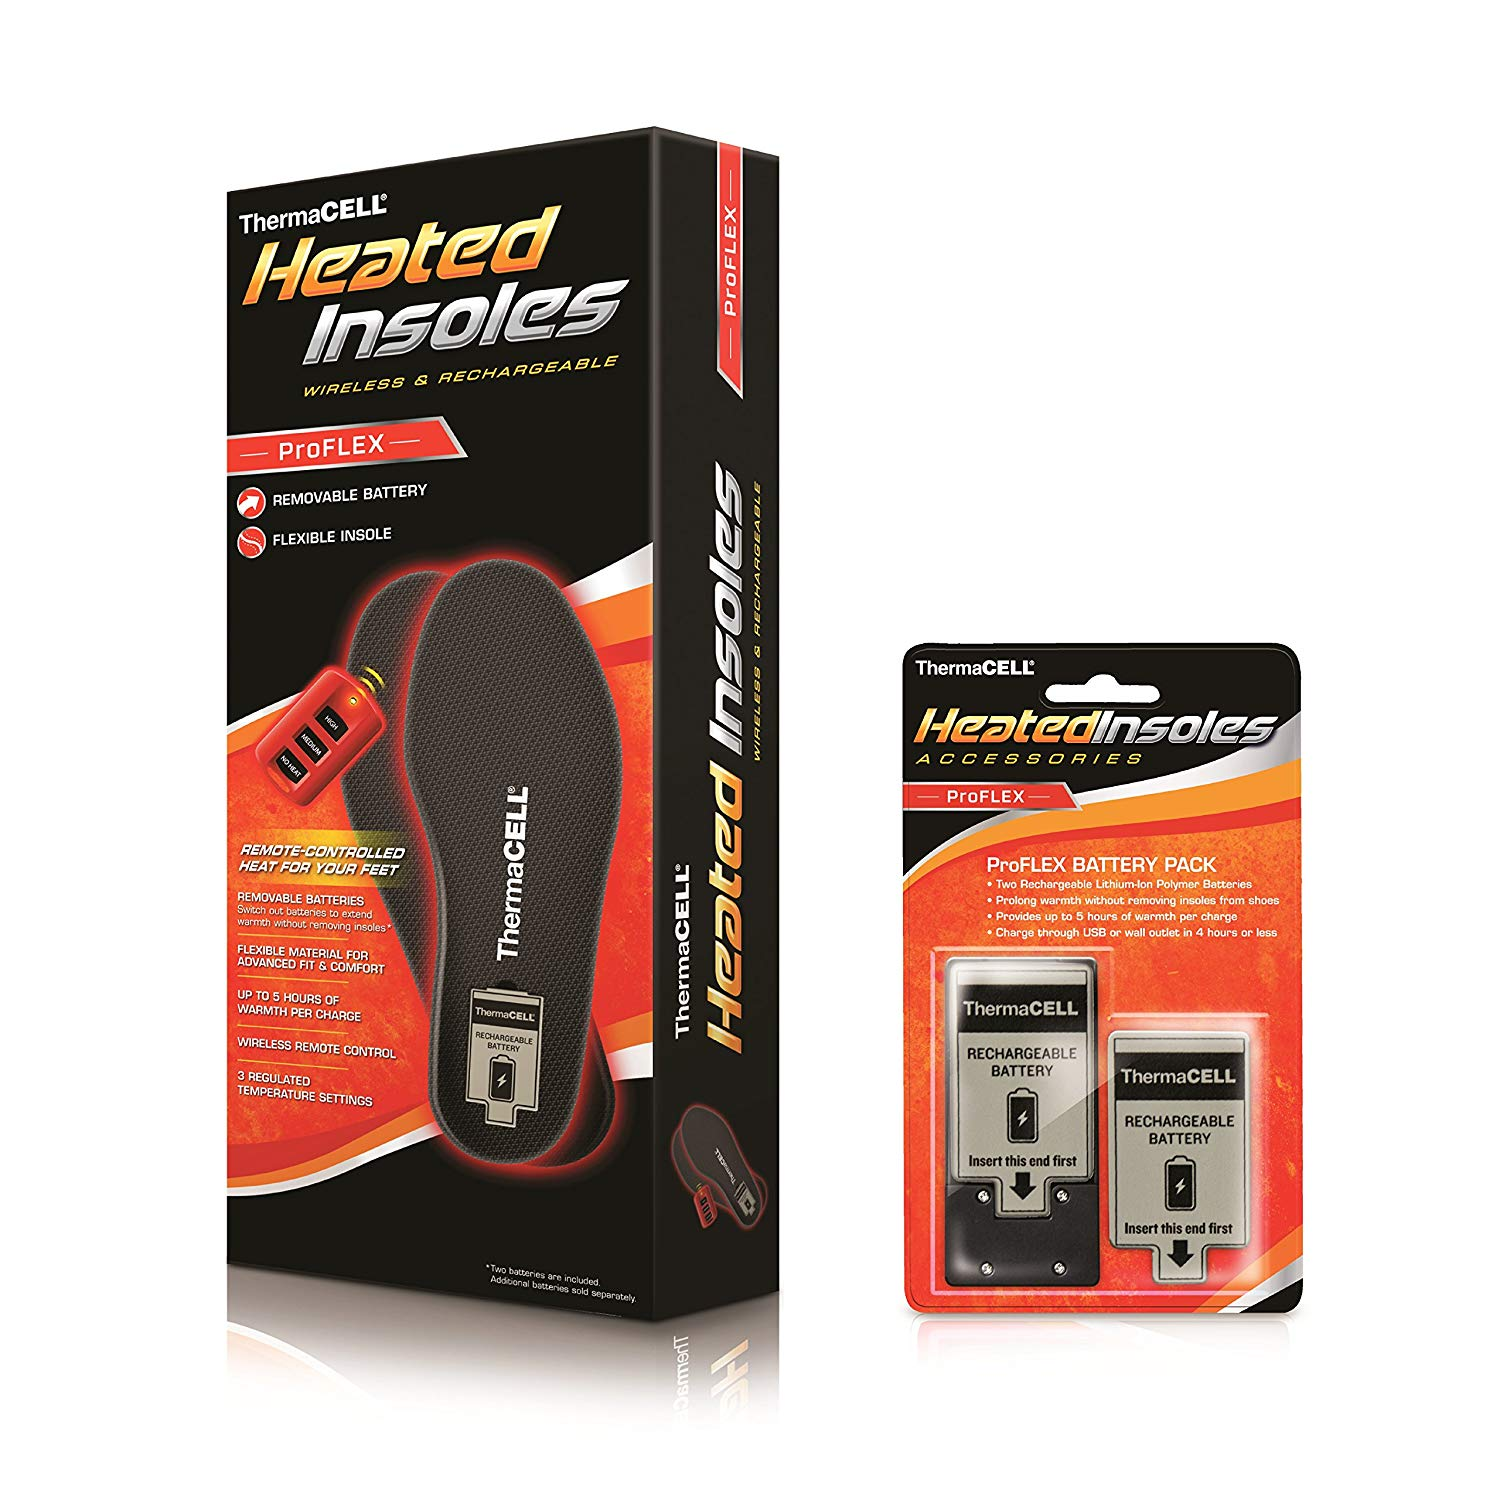 ThermaCELL ProFLEX Remote-Control Heated Insoles Bundle with Extra Battery Pack,